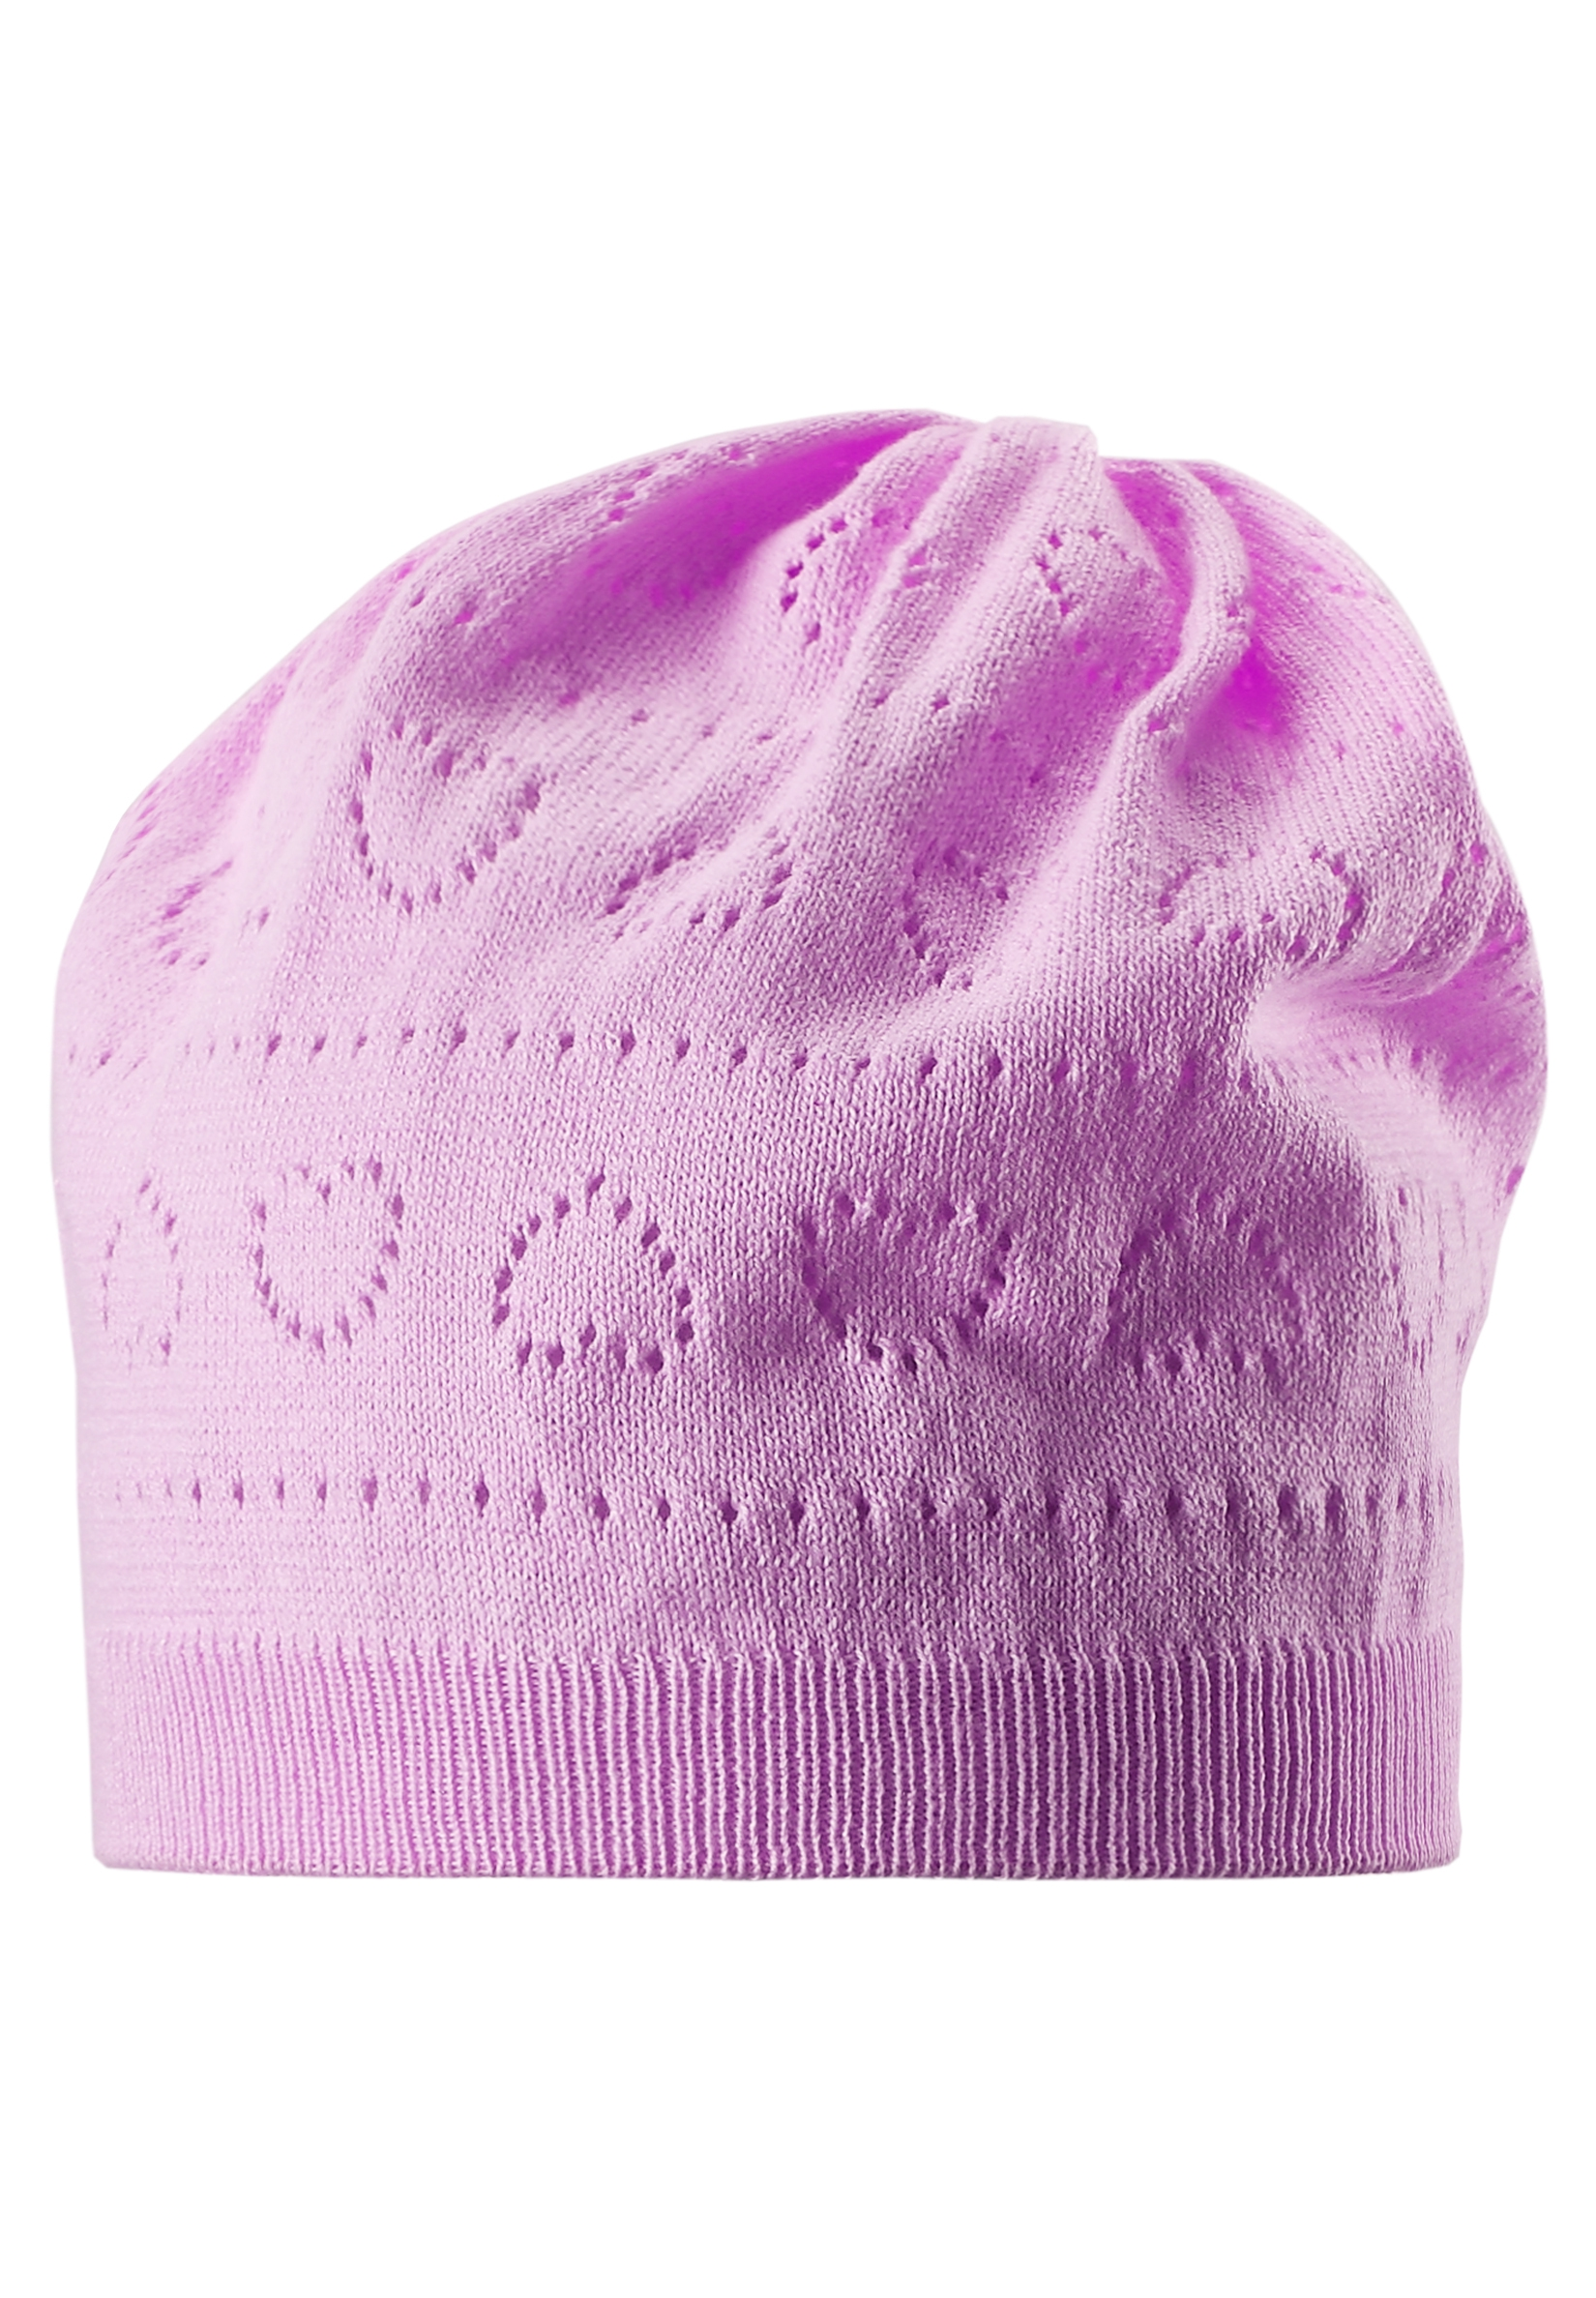 Головные уборы Reima Шапка для девочки, Beanie, Meringue baby pink, розовая ac dc ac dc for those about to rock we salute you lp